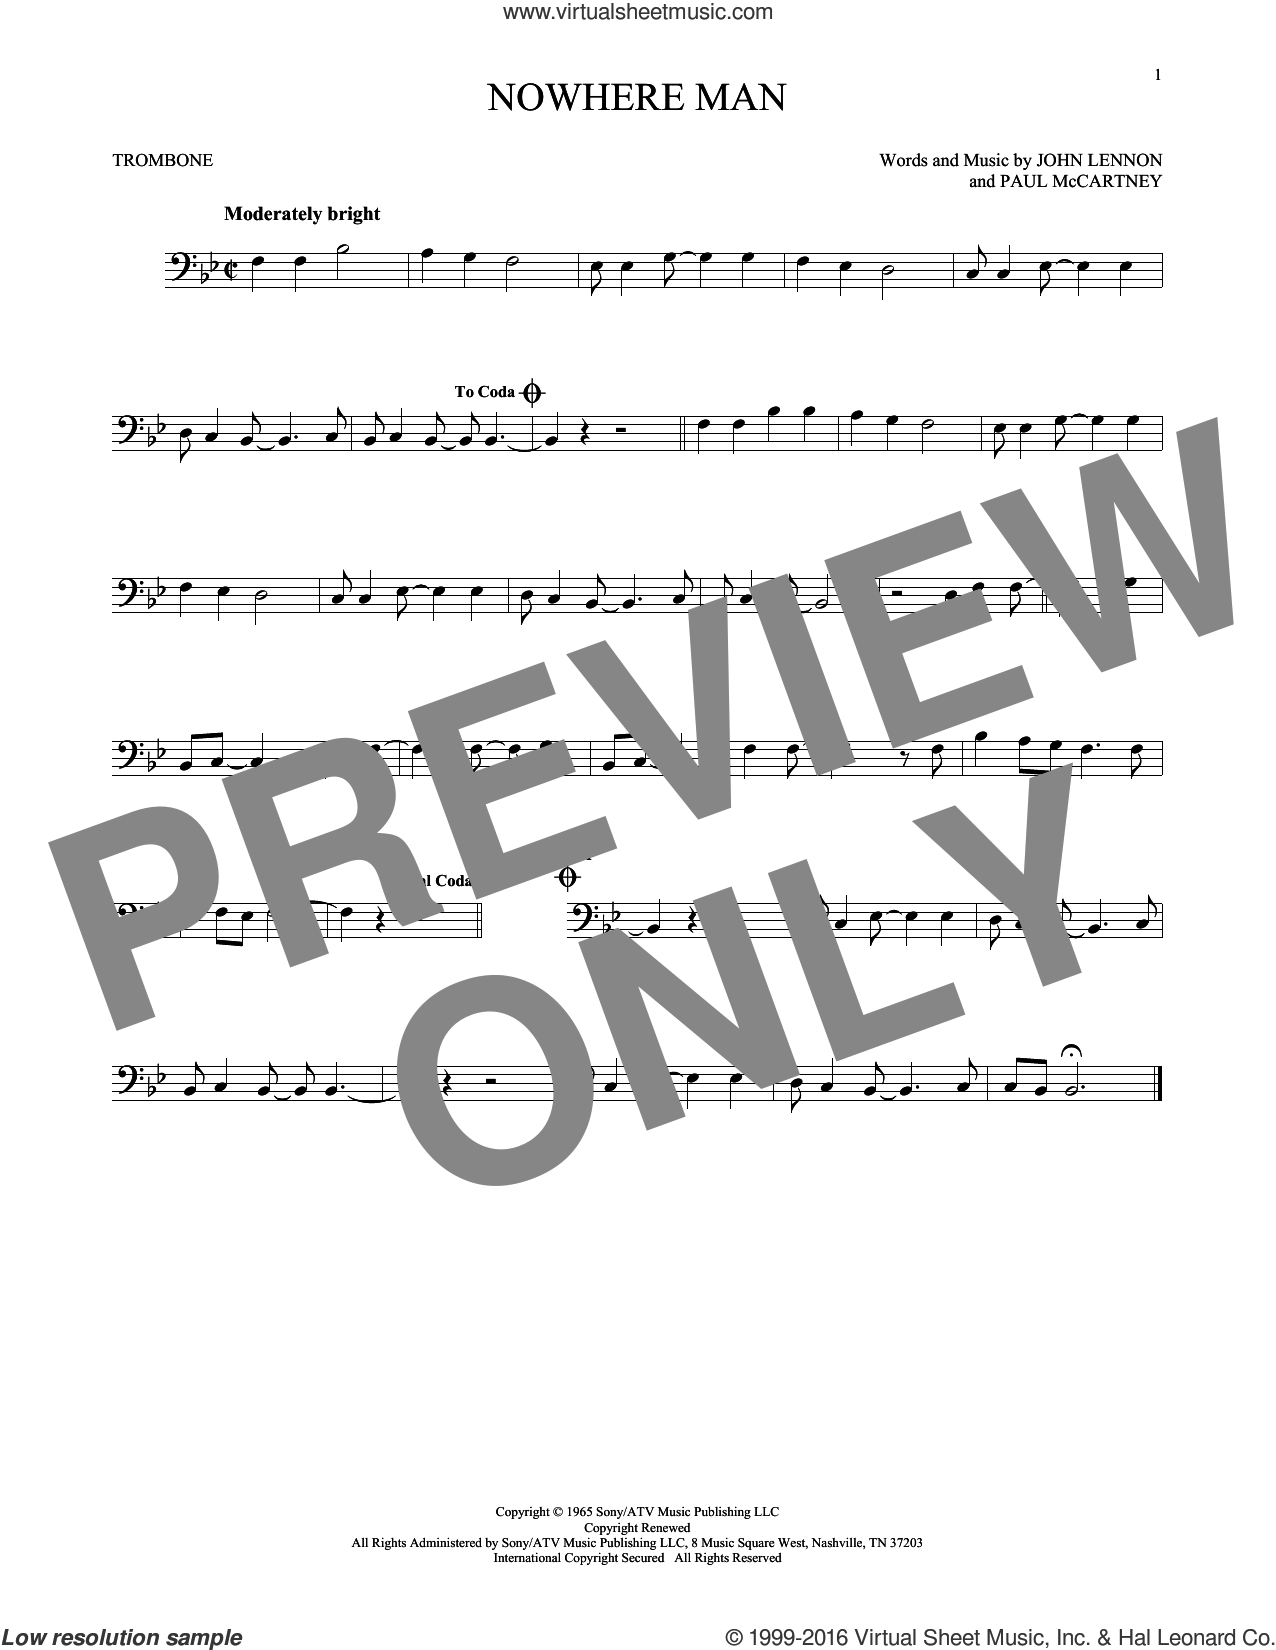 Nowhere Man sheet music for trombone solo by The Beatles, John Lennon and Paul McCartney, intermediate skill level